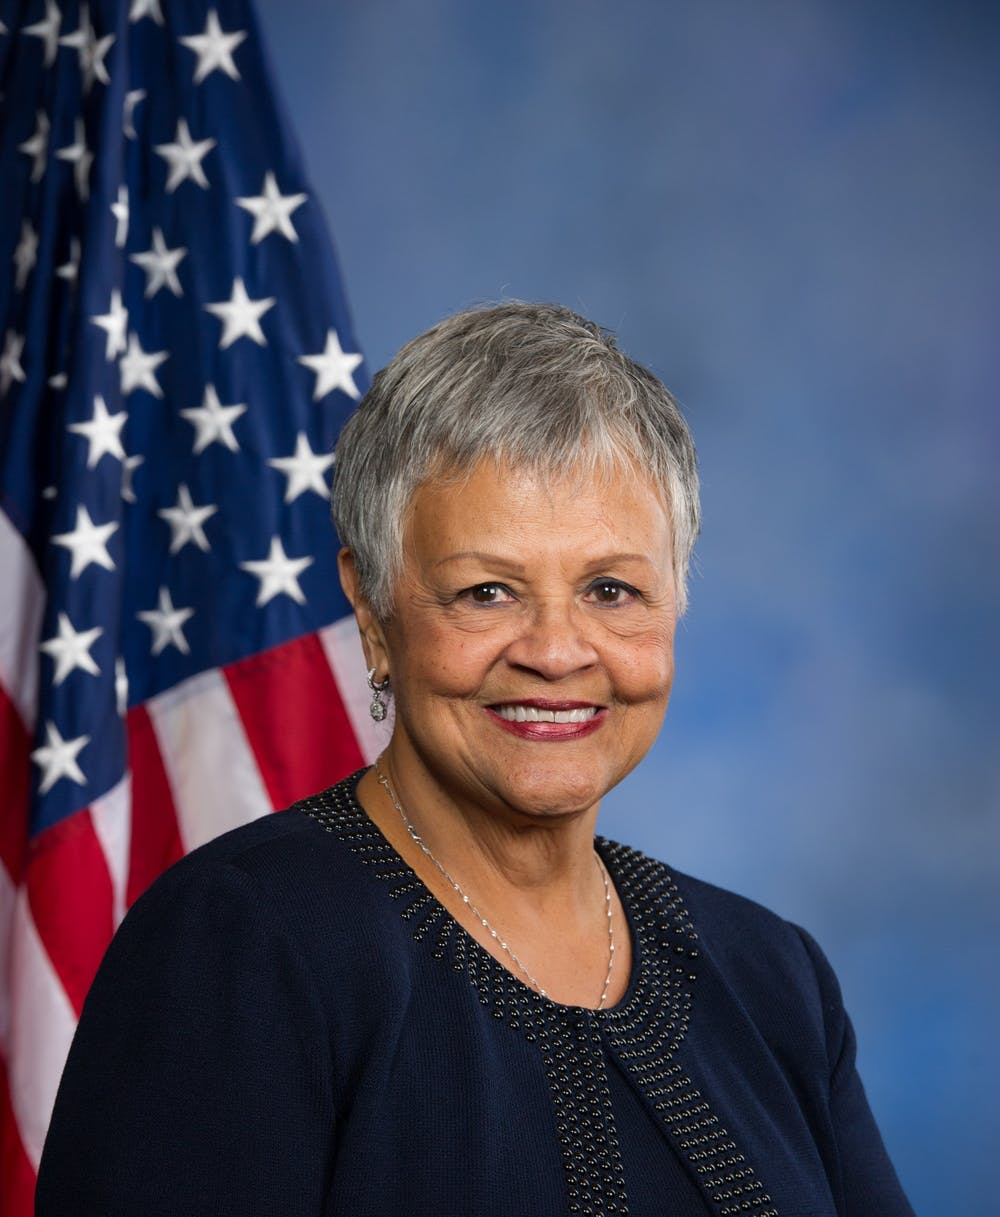 "<h6>Rep. Bonnie Watson Coleman (NJ-12)</h6> <h6>Photo courtesy of <a href=""https://watsoncoleman.house.gov/contact/press-kit.htm"" target=""_self"">Rep. Coleman</a></h6>"